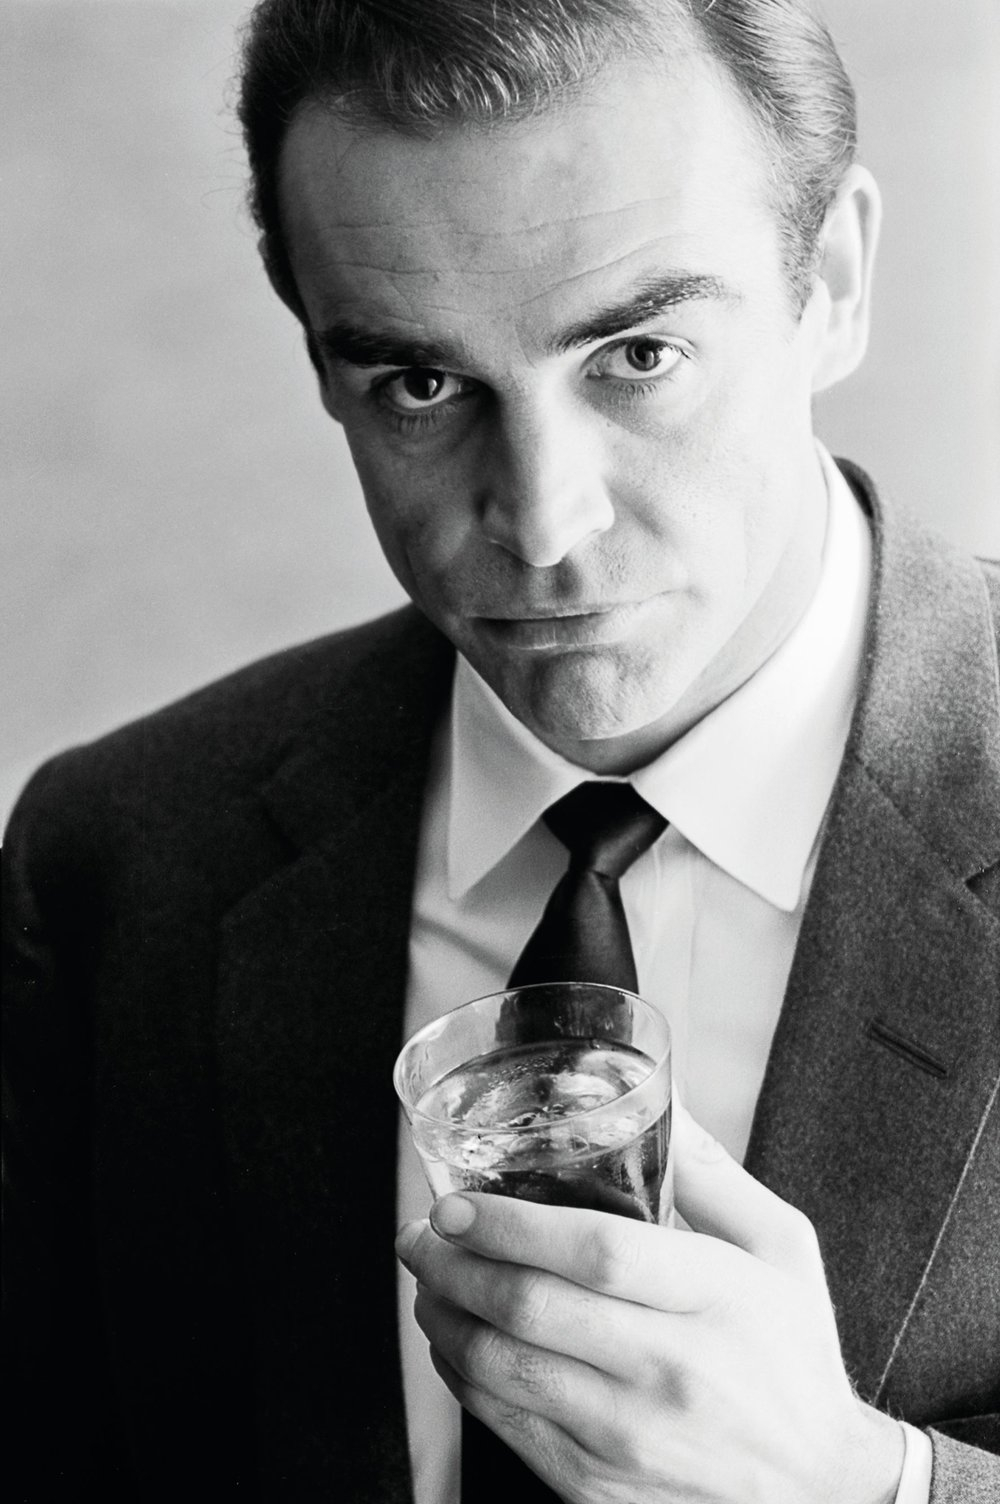 Sean Connery, Advertising Shoot for Smirnoff Vodka, 1962